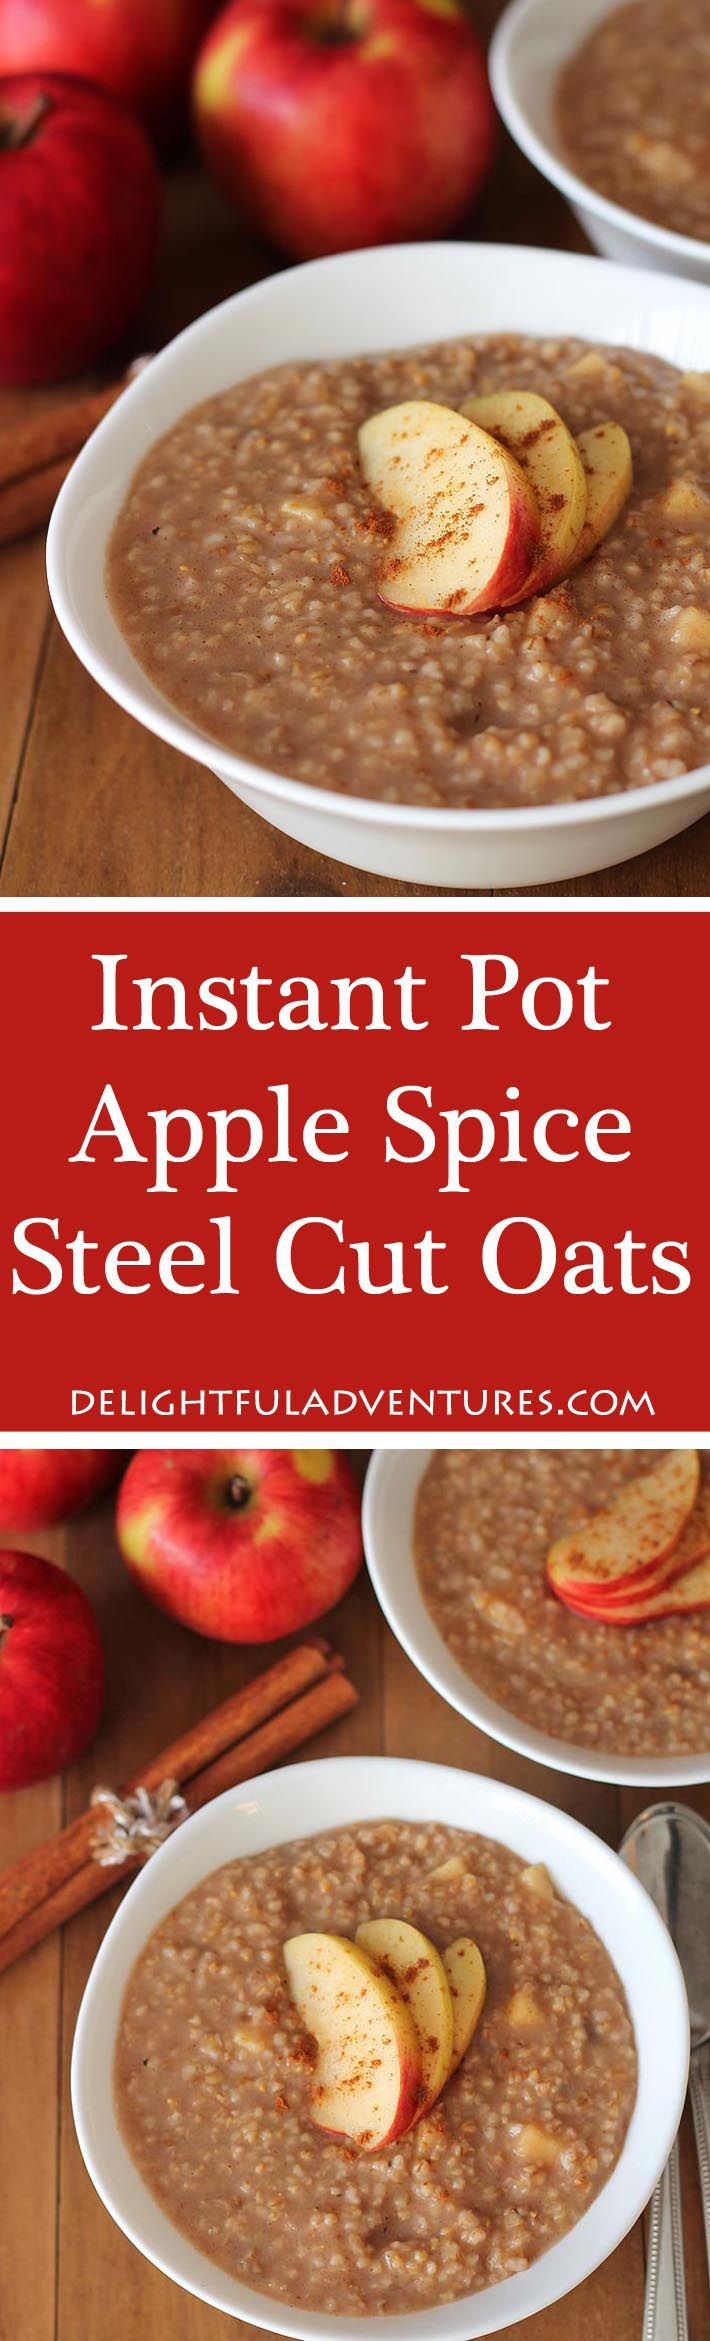 Apple Spice Instant Pot Steel Cut Oats make the perfect easy, warm, and delicious breakfast for cold days. #instantpot #pressurecooker #steelcutoats #veganglutenfree #glutenfreevegan #veganbreakfast #glutenfreebreakfast via @delighfuladv